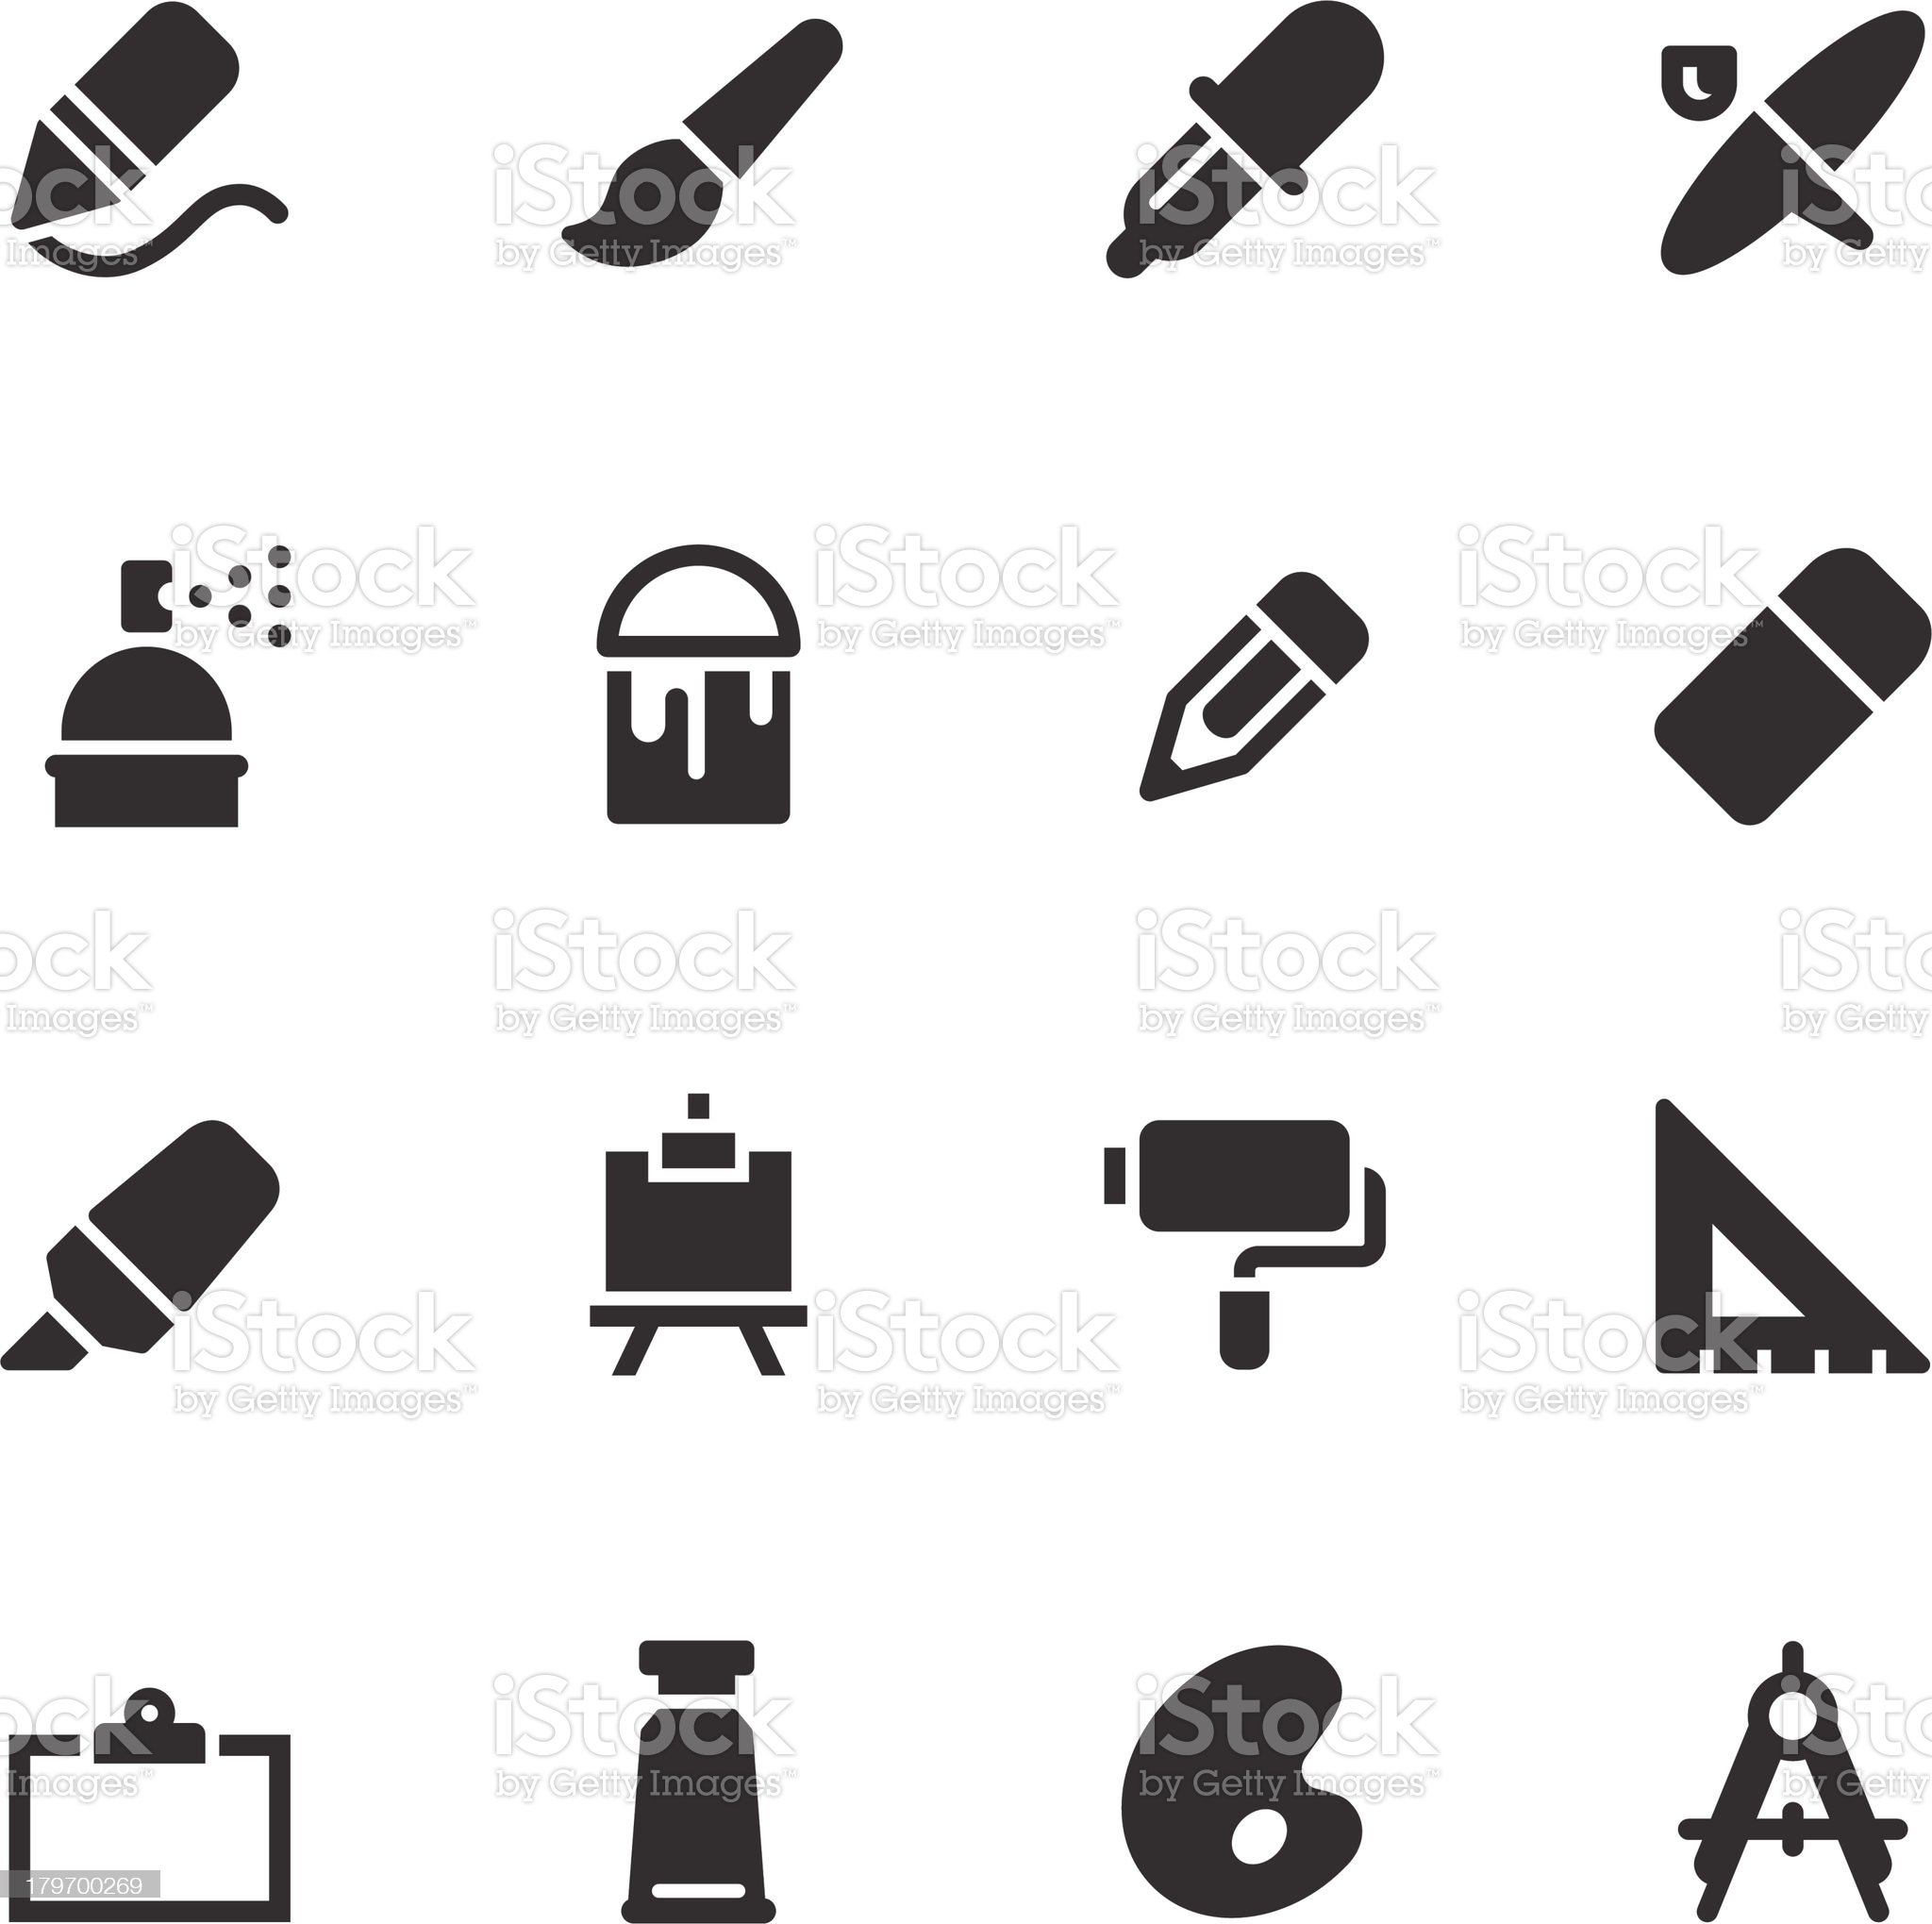 Drawing and Painting Icons - Black Series royalty-free stock vector art